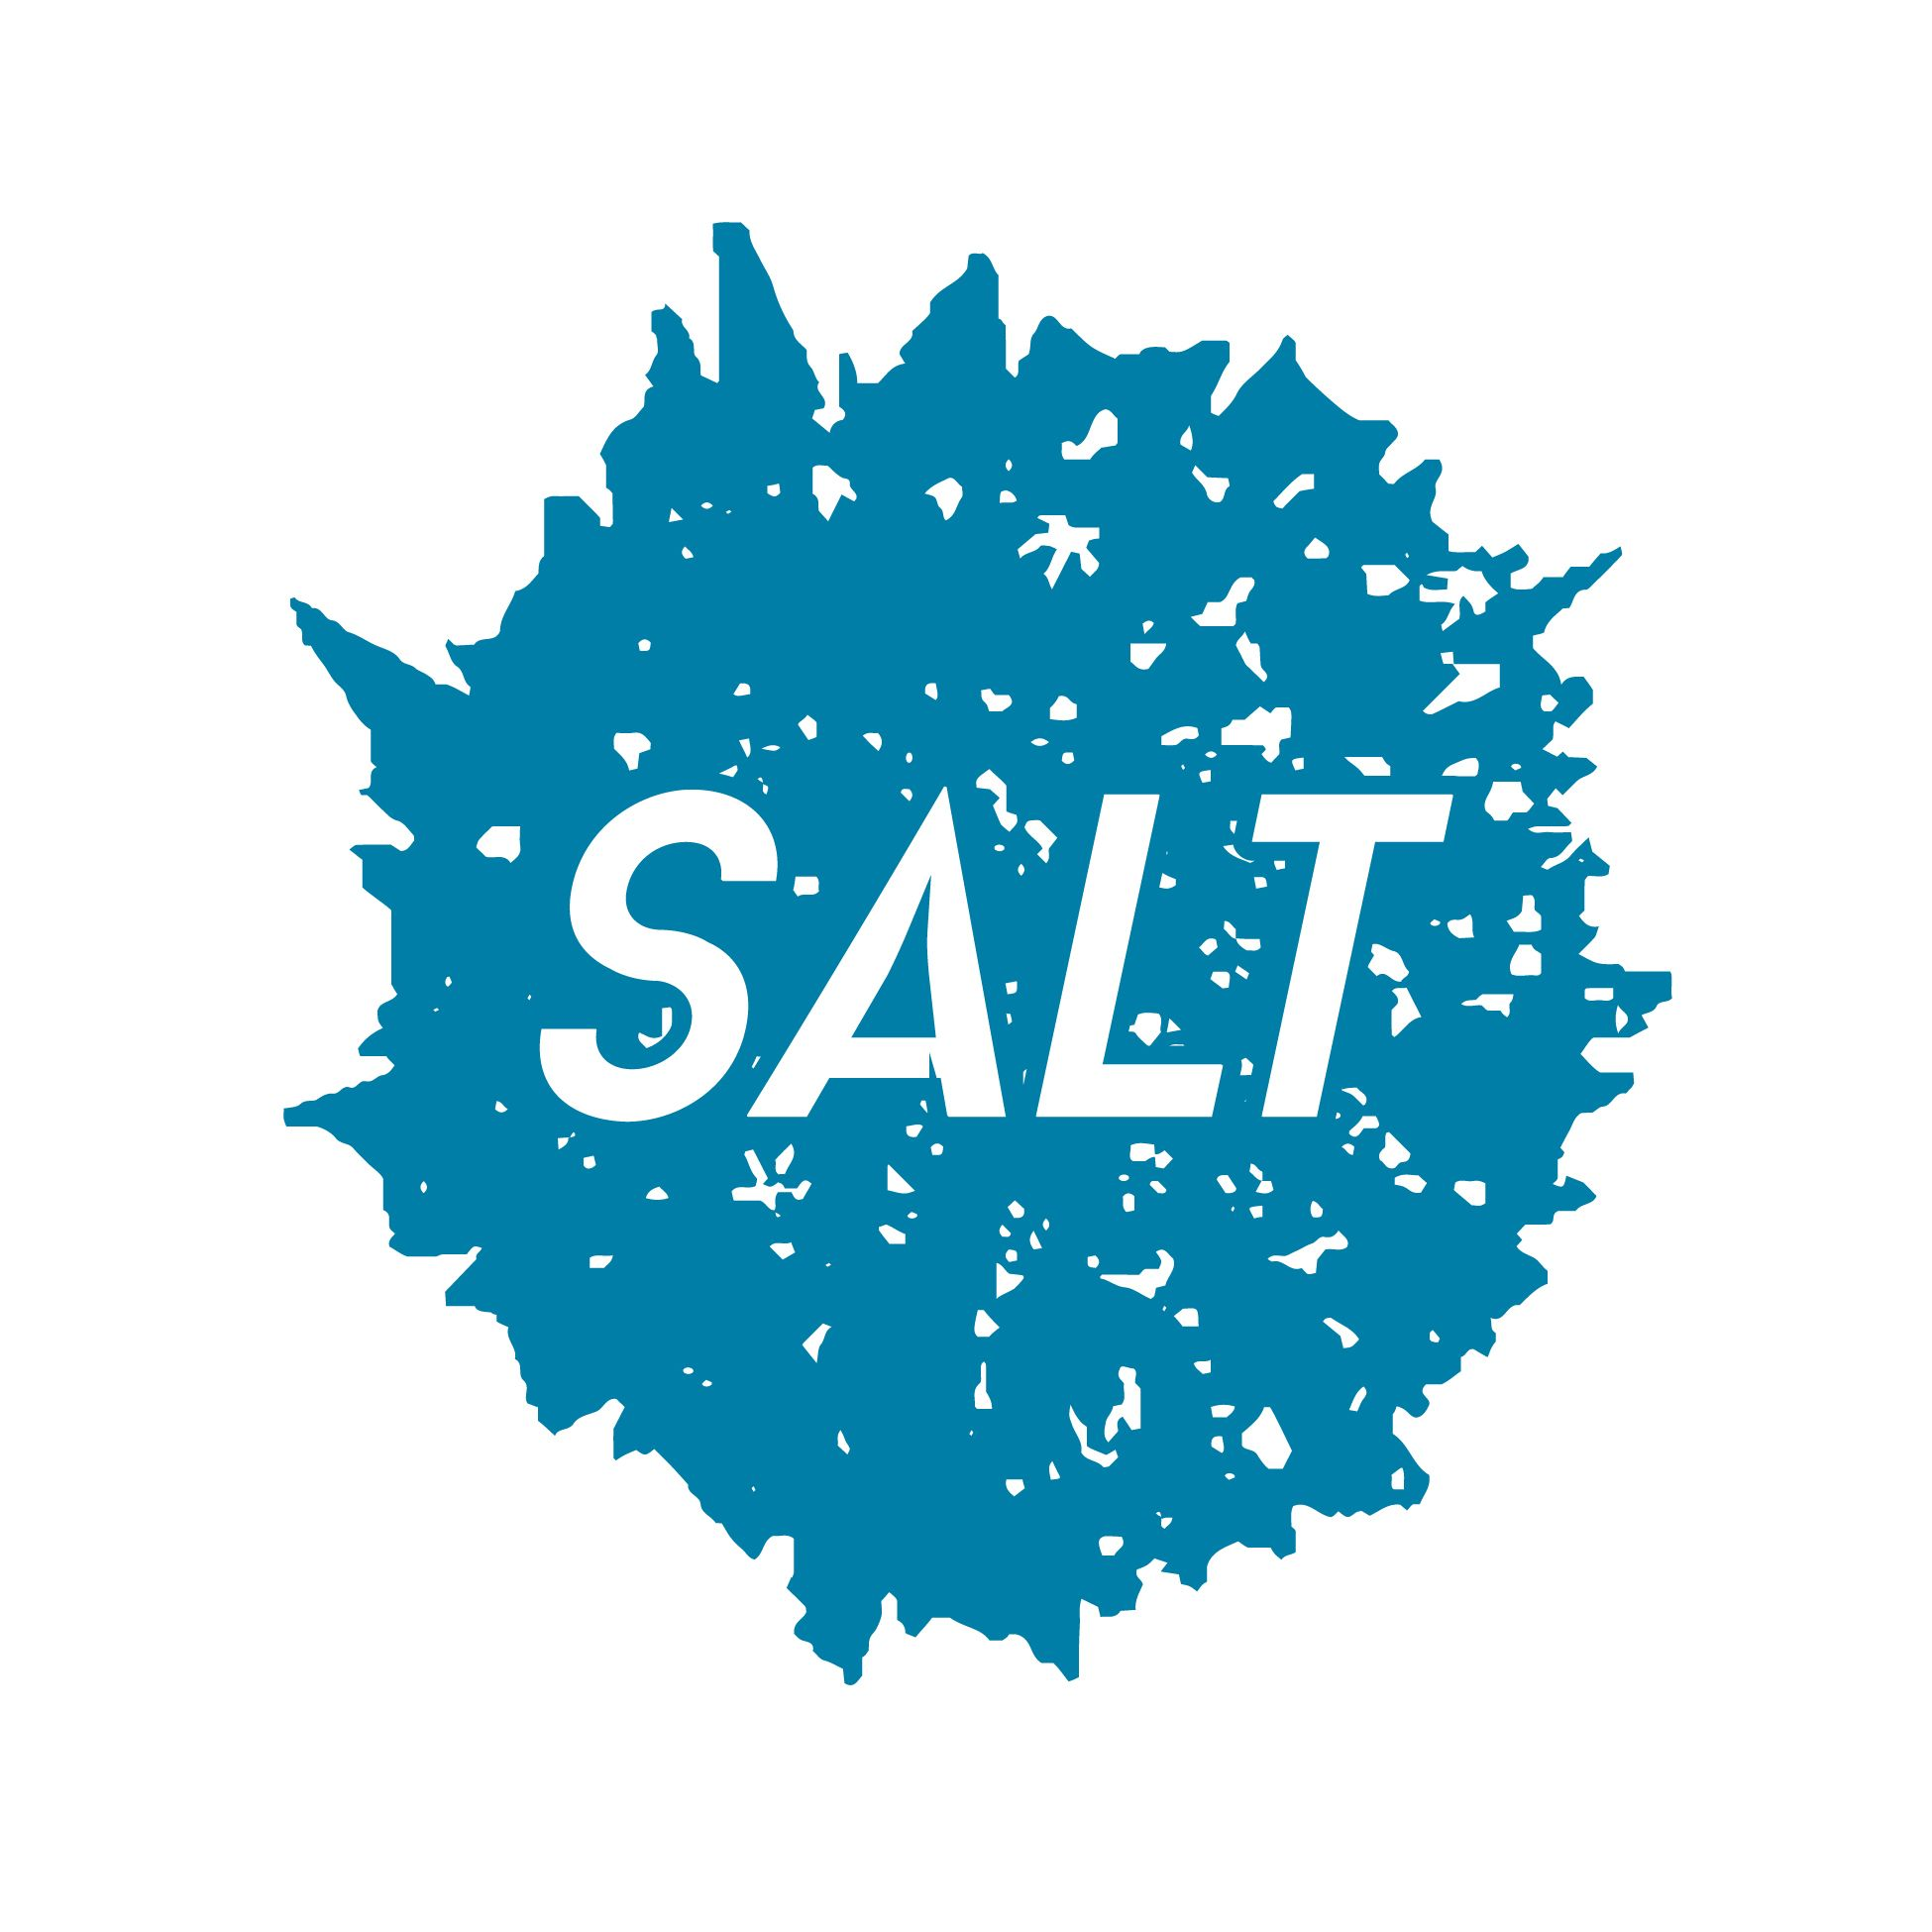 Salt Youth Ministry - Youth Group Logos | Youth logo ...